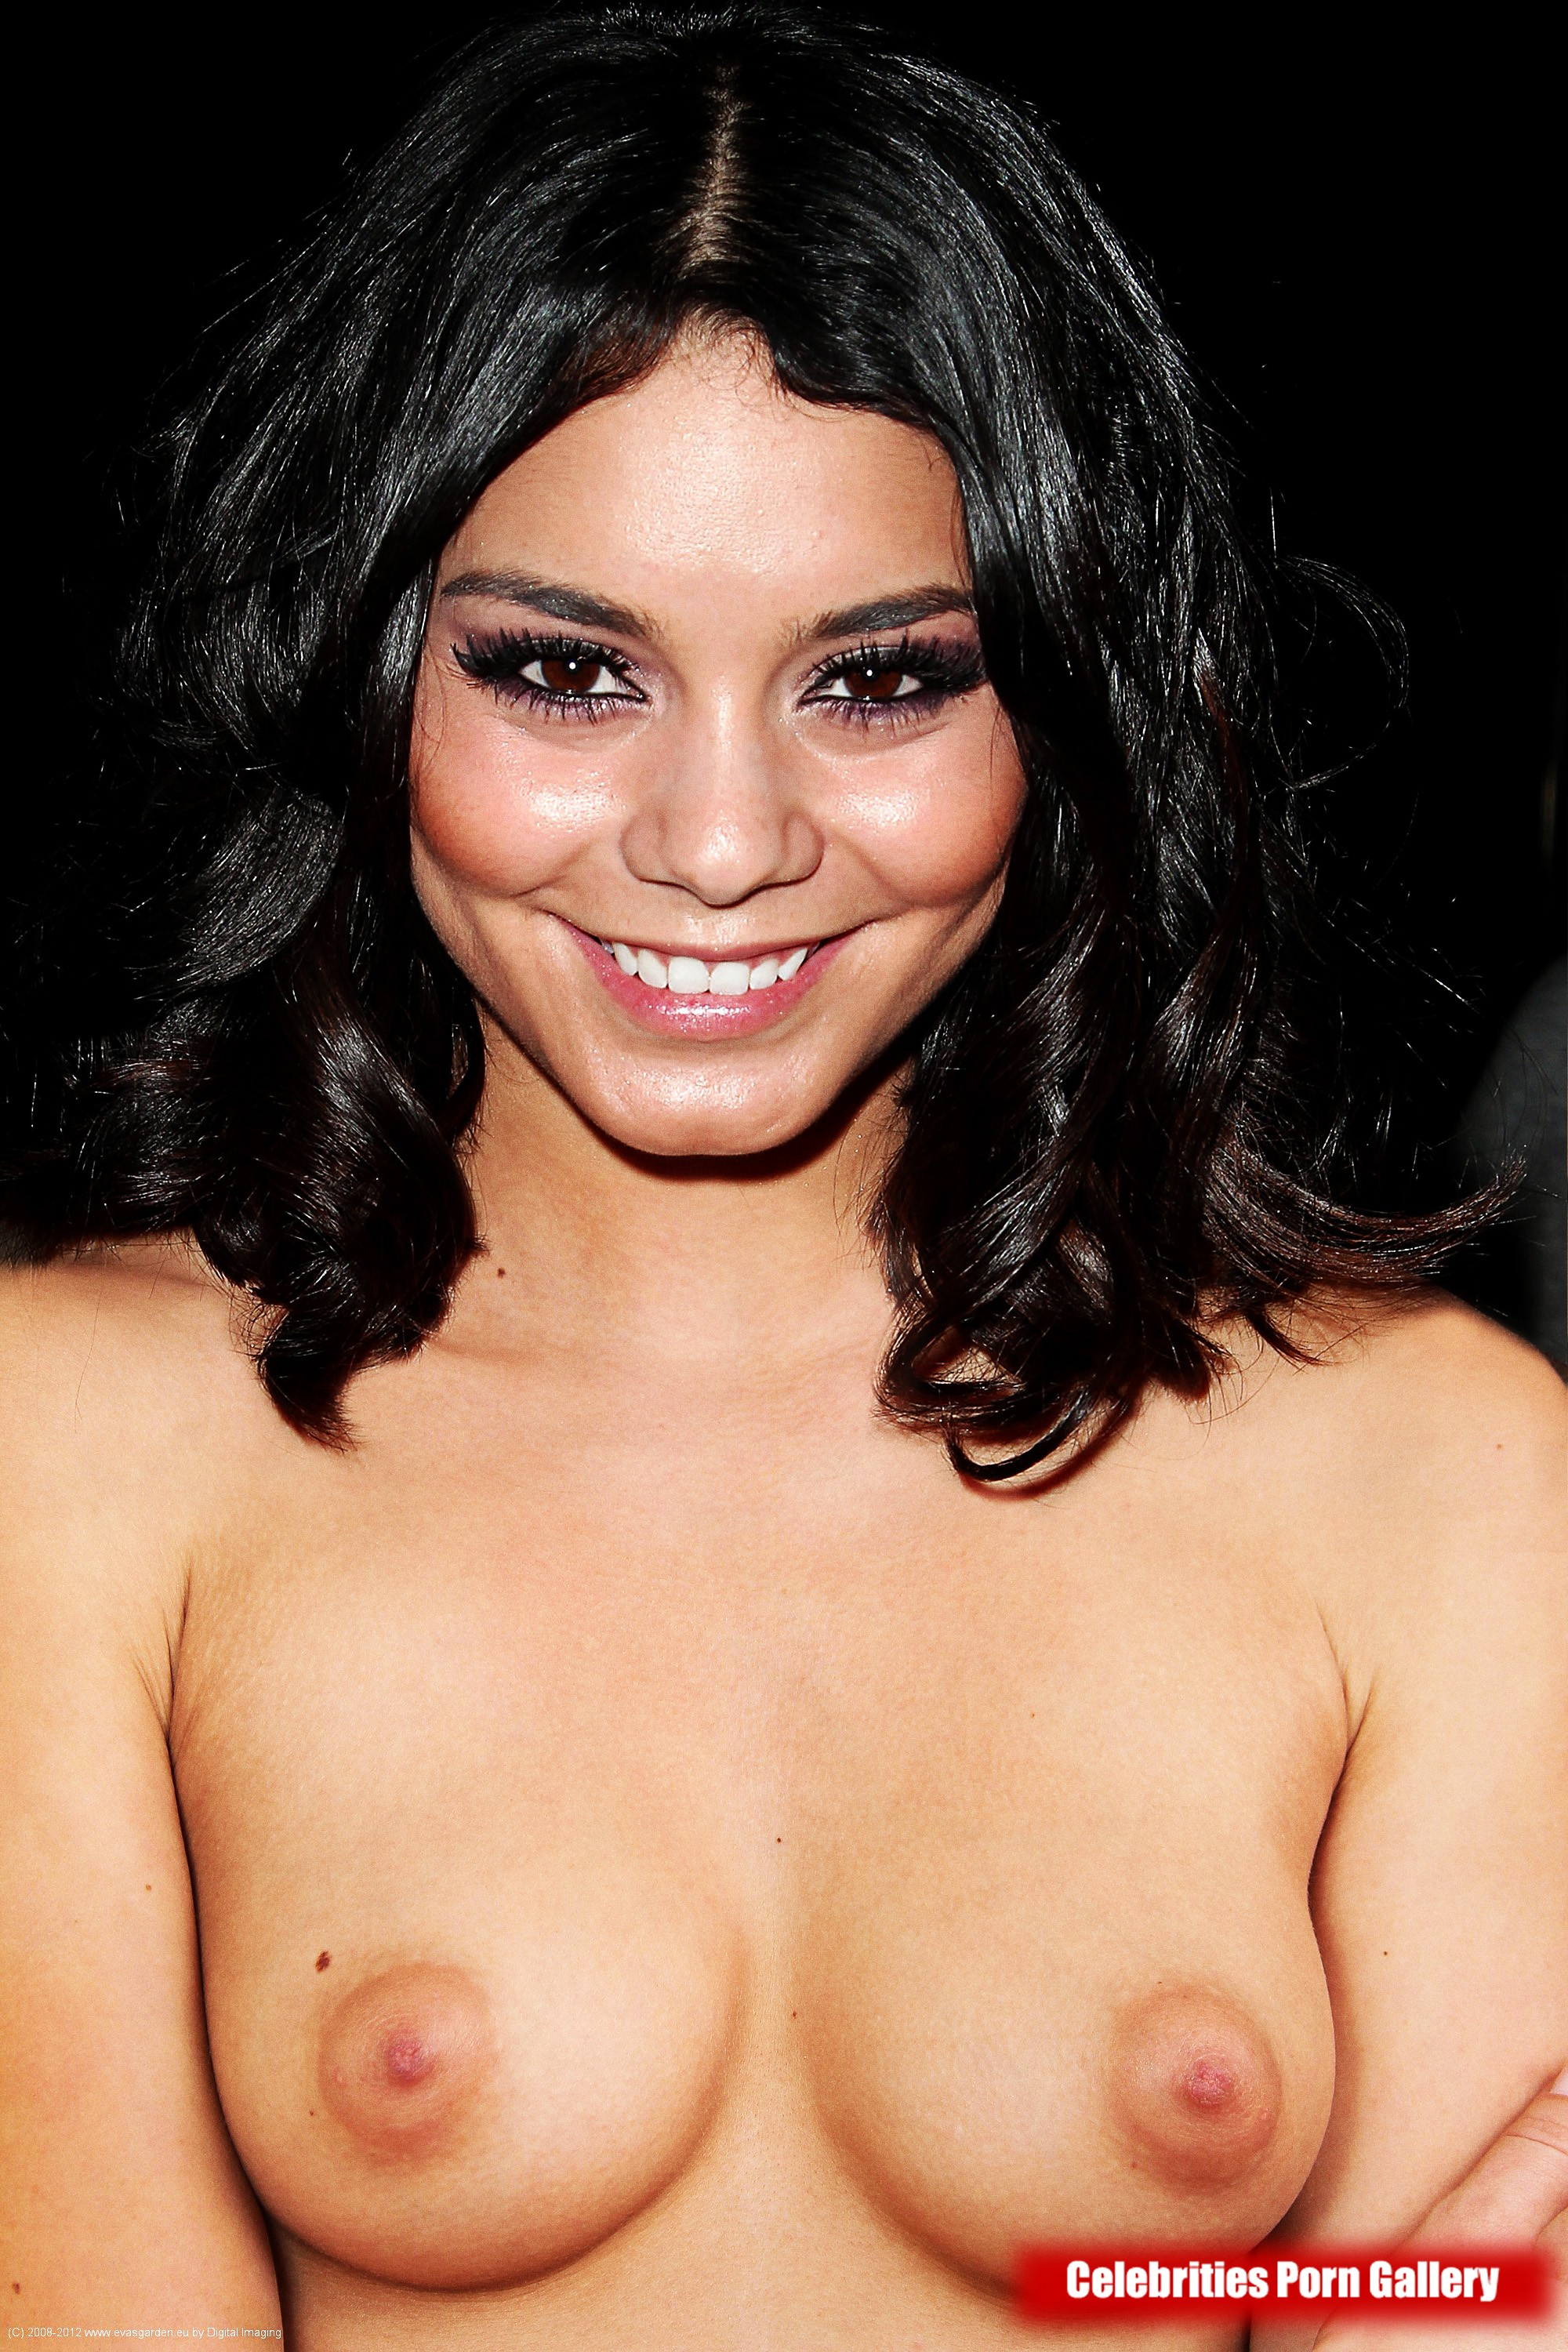 Vanessa Hudgens NAKED PHOTOS: New Nude Pictures Show Starlet - AGAIN